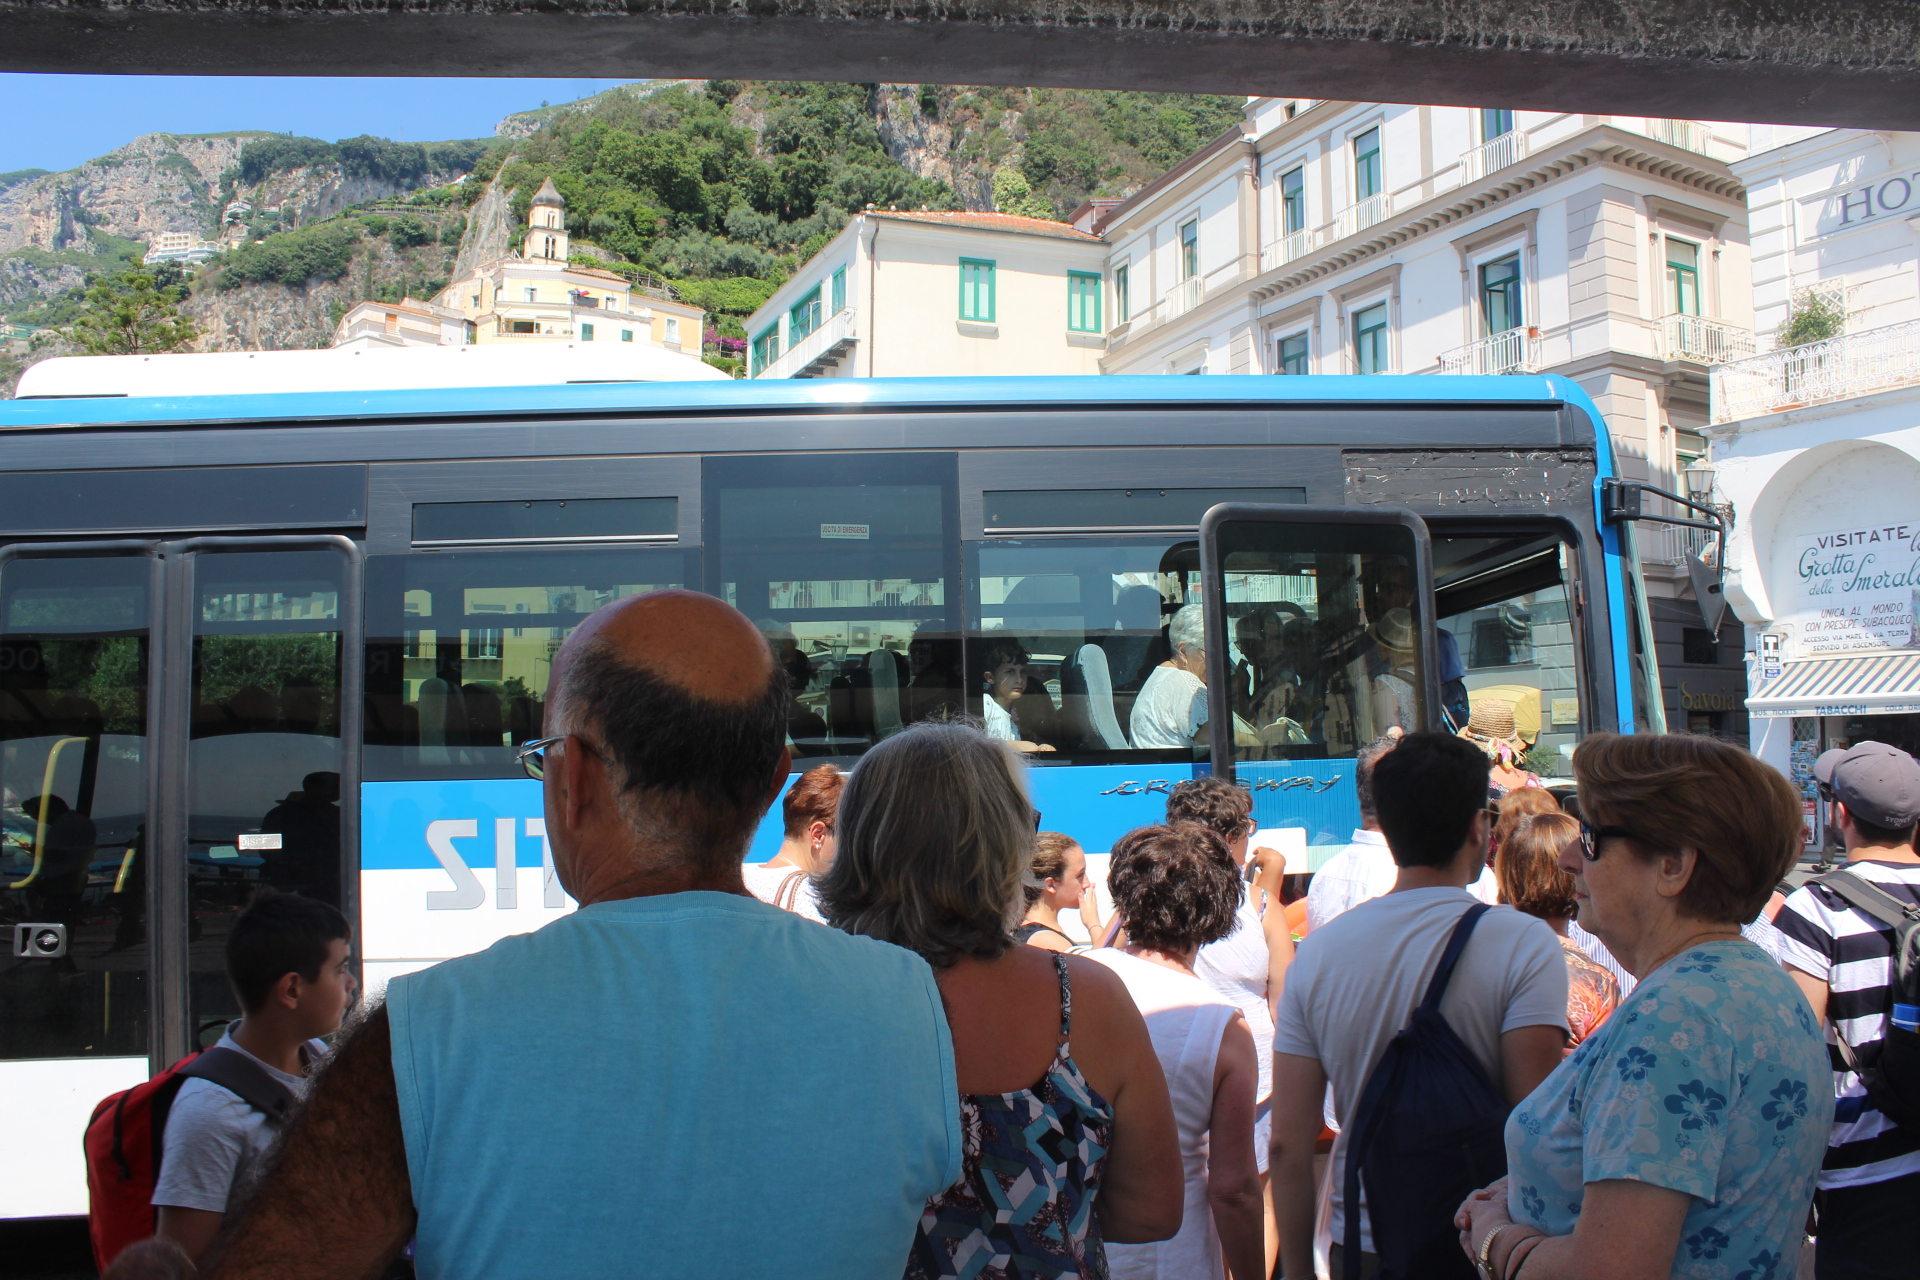 Travelling by bus to the Amalfi Coast